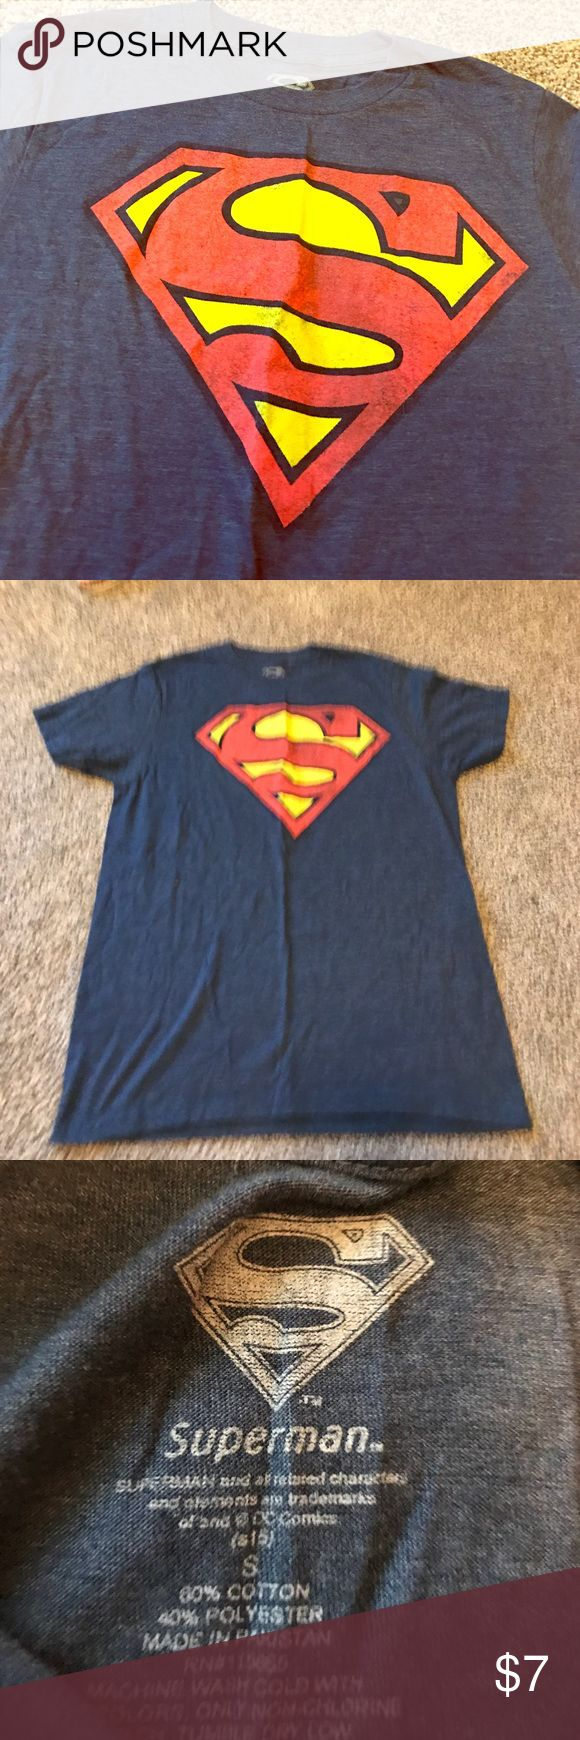 Super man Tshirt Superman Tee - only worn once for school spirit day! Perfect condition Tops Tees - Short Sleeve